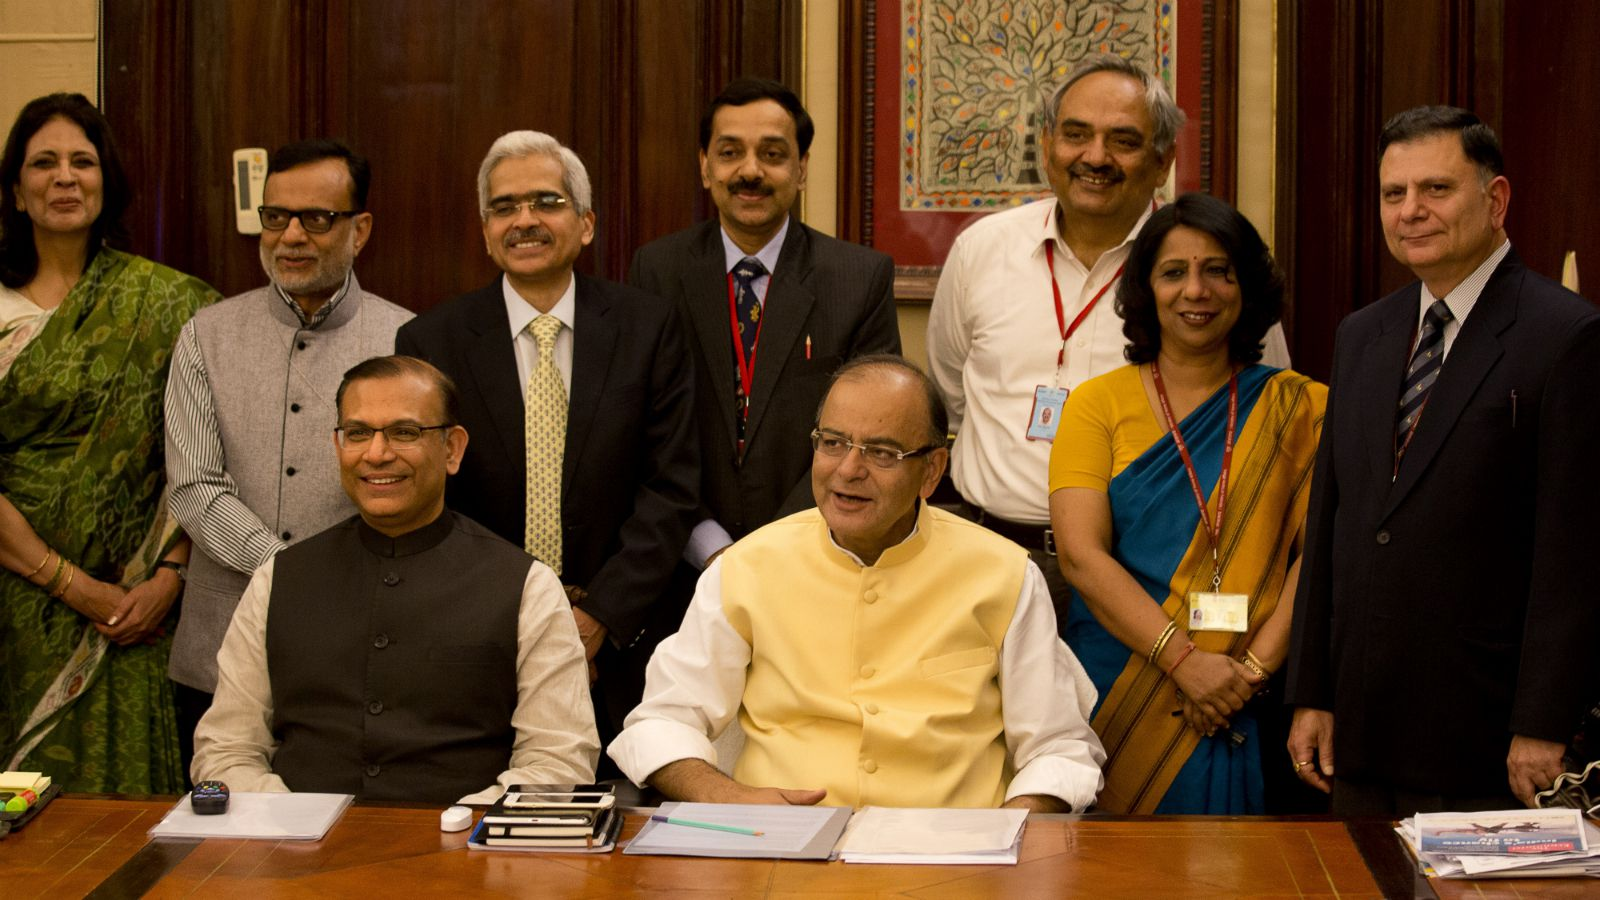 Indian finance minister Arun Jaitley, centre, and Indian minister of state for finance Jayant Sinha, seated left, pose for photographs with their team on the eve of annual budget presentation, in New Delhi, India, Friday, Feb. 27, 2015. The Economic Survey, an annual report on the state of Asia's third-largest economy, said Friday that India's economy will grow more than 8 percent in the upcoming financial year, which would make it the world's fastest growing economy, surpassing China.